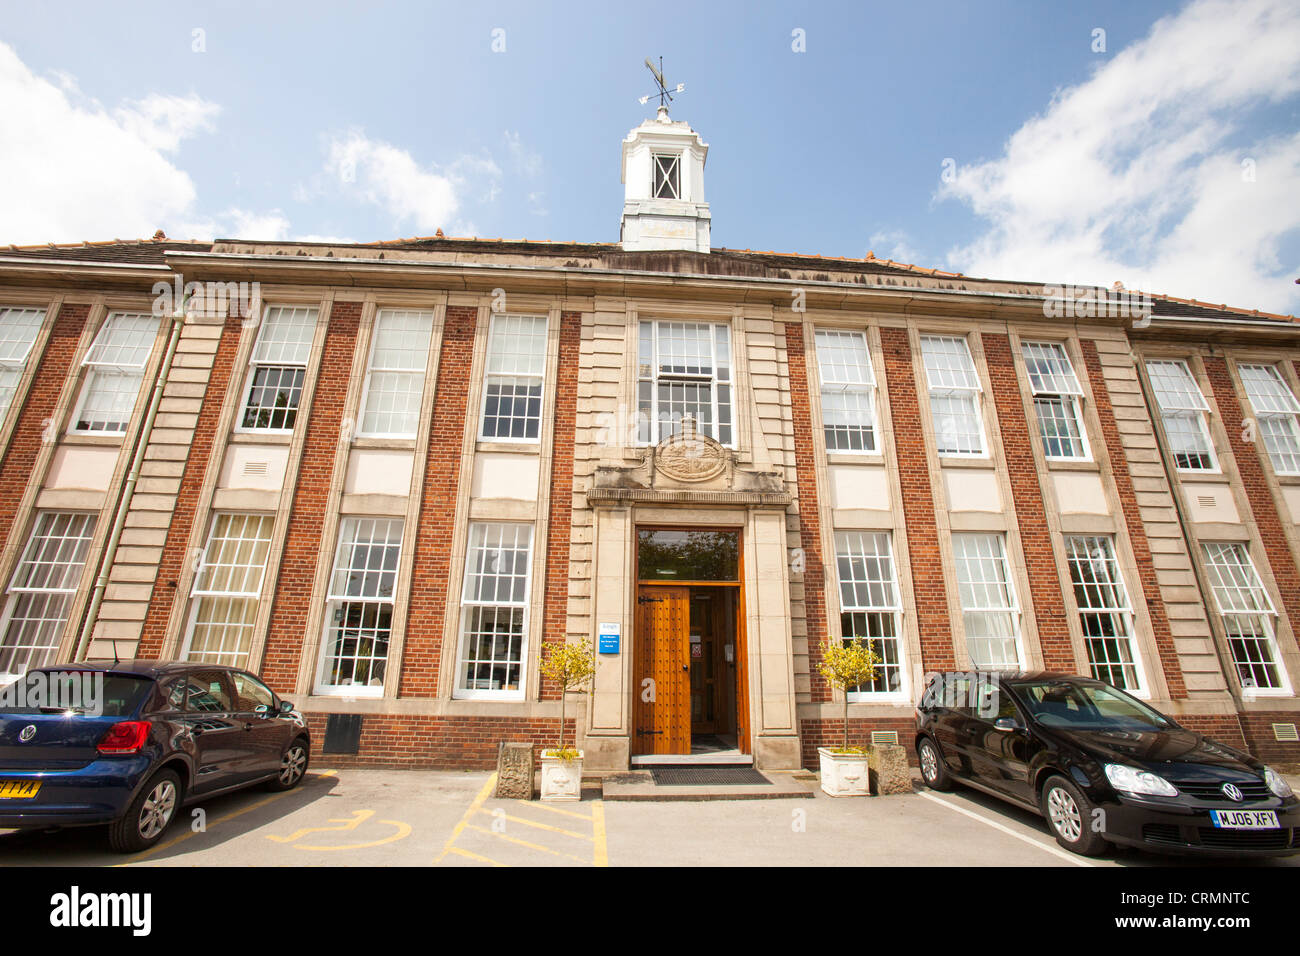 The Kings school, an ancient independant Grammar School that was founded in 1506 in Macclesfield, Cheshire, UK. - Stock Image